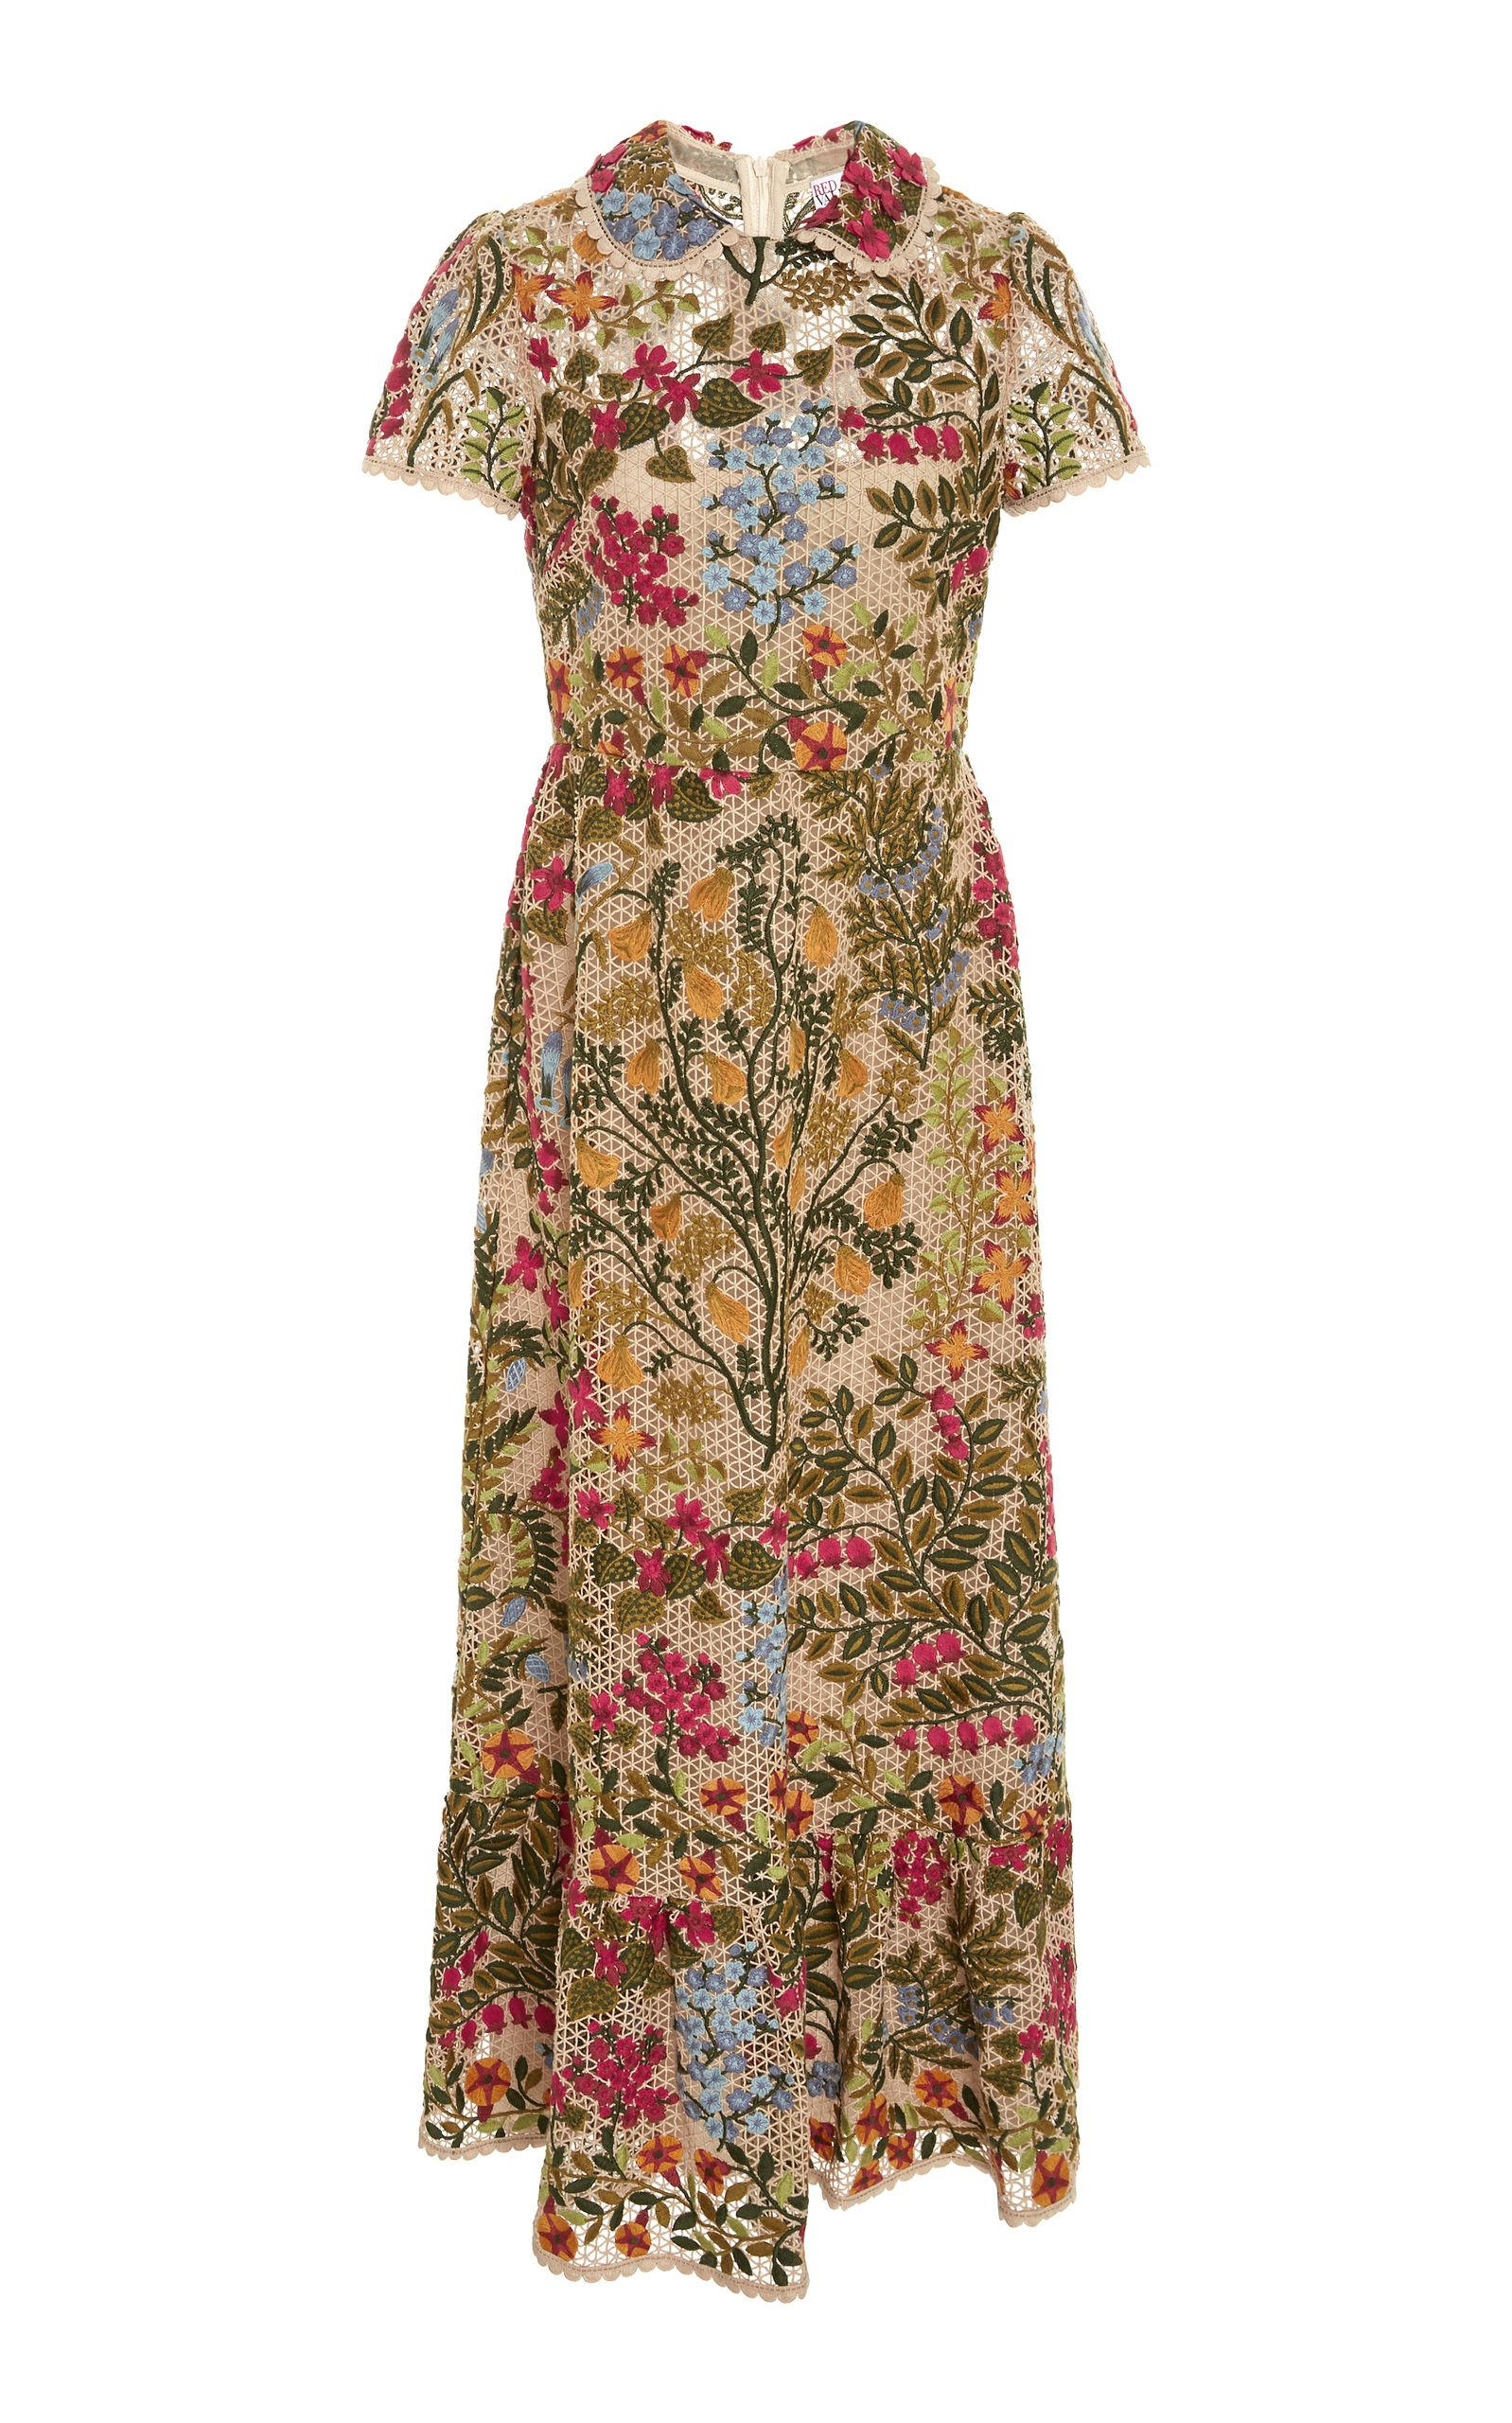 Valentino Woman Printed Cotton Top Marigold Size M Valentino Buy Cheap Amazing Price 2018 Newest Online Outlet Buy 1kqRn